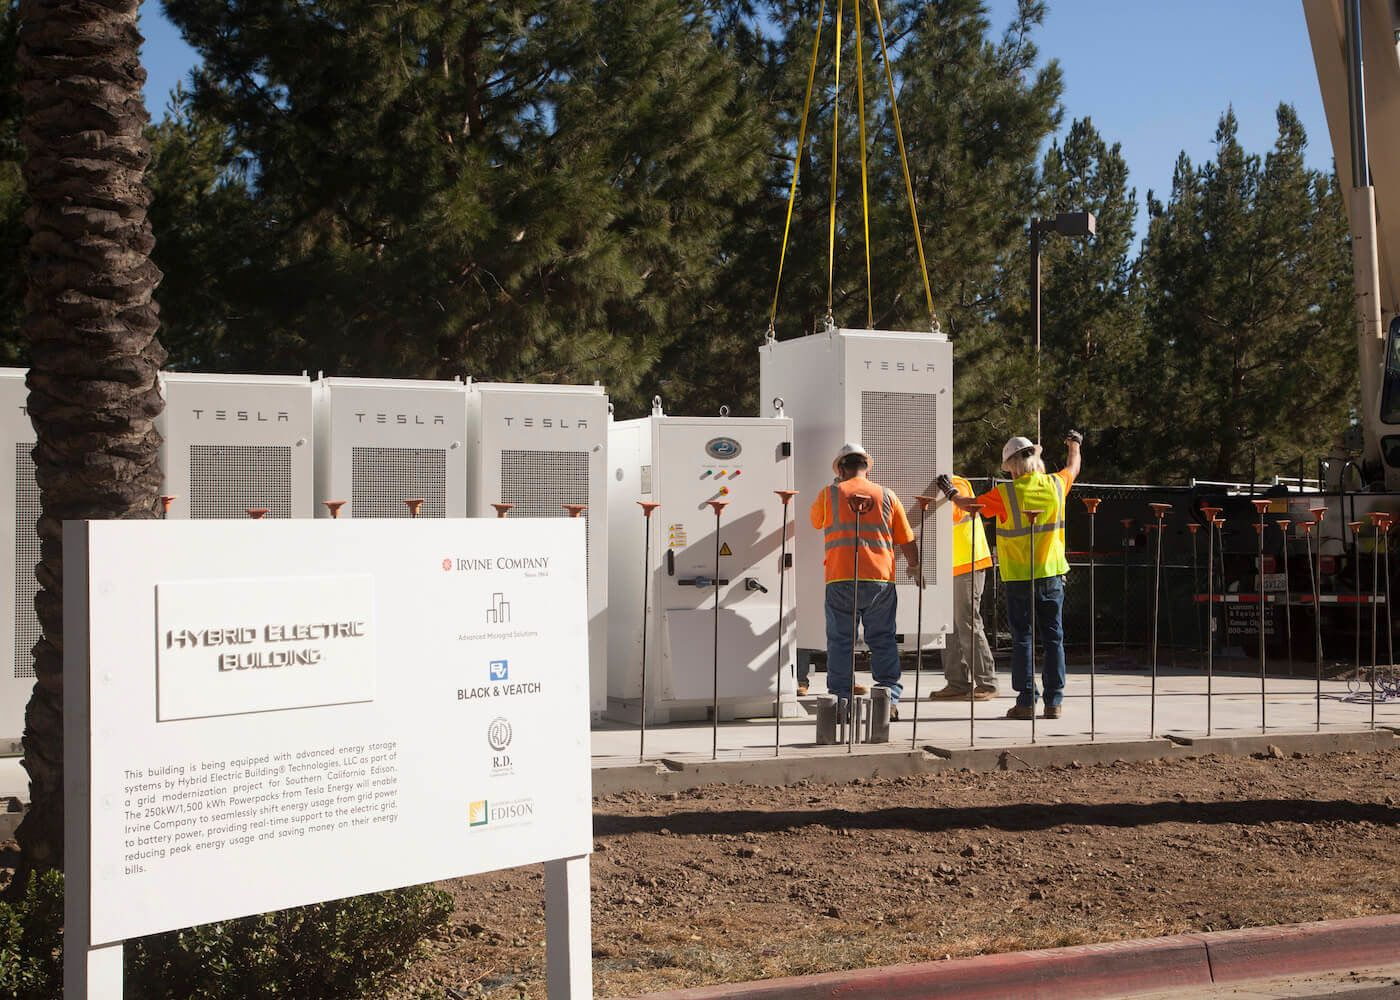 Advanced Microgrid Solutions is leading a project to replace the power from a decommissioned nuclear plant with solar arrays and batteries.